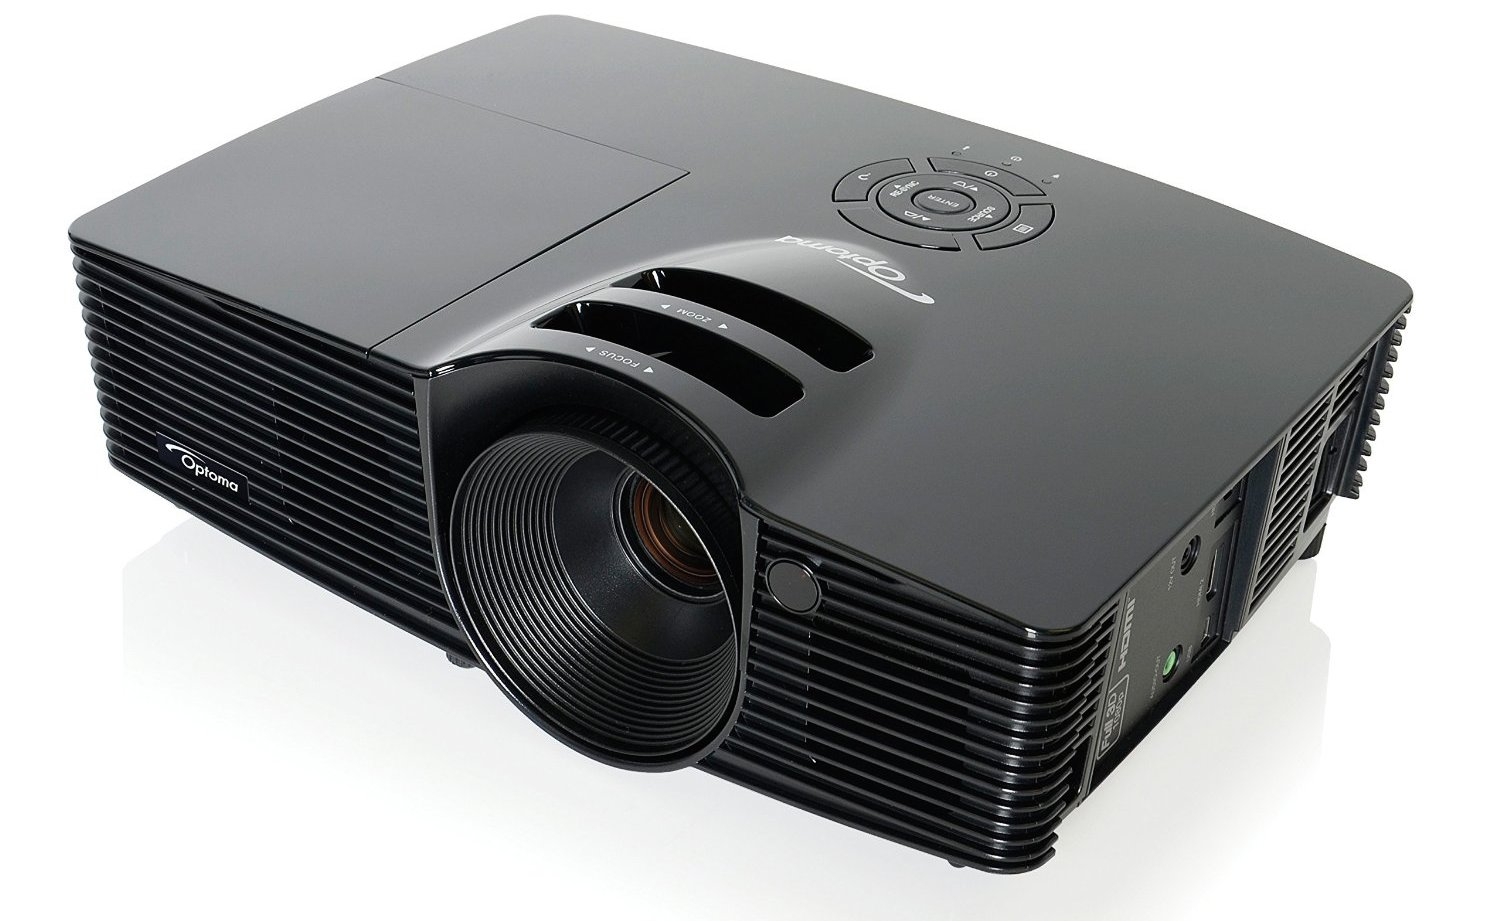 Optoma 3d Optoma 3d 1080p Home Projector W Hdmi Free 50 Amazon Gift Card